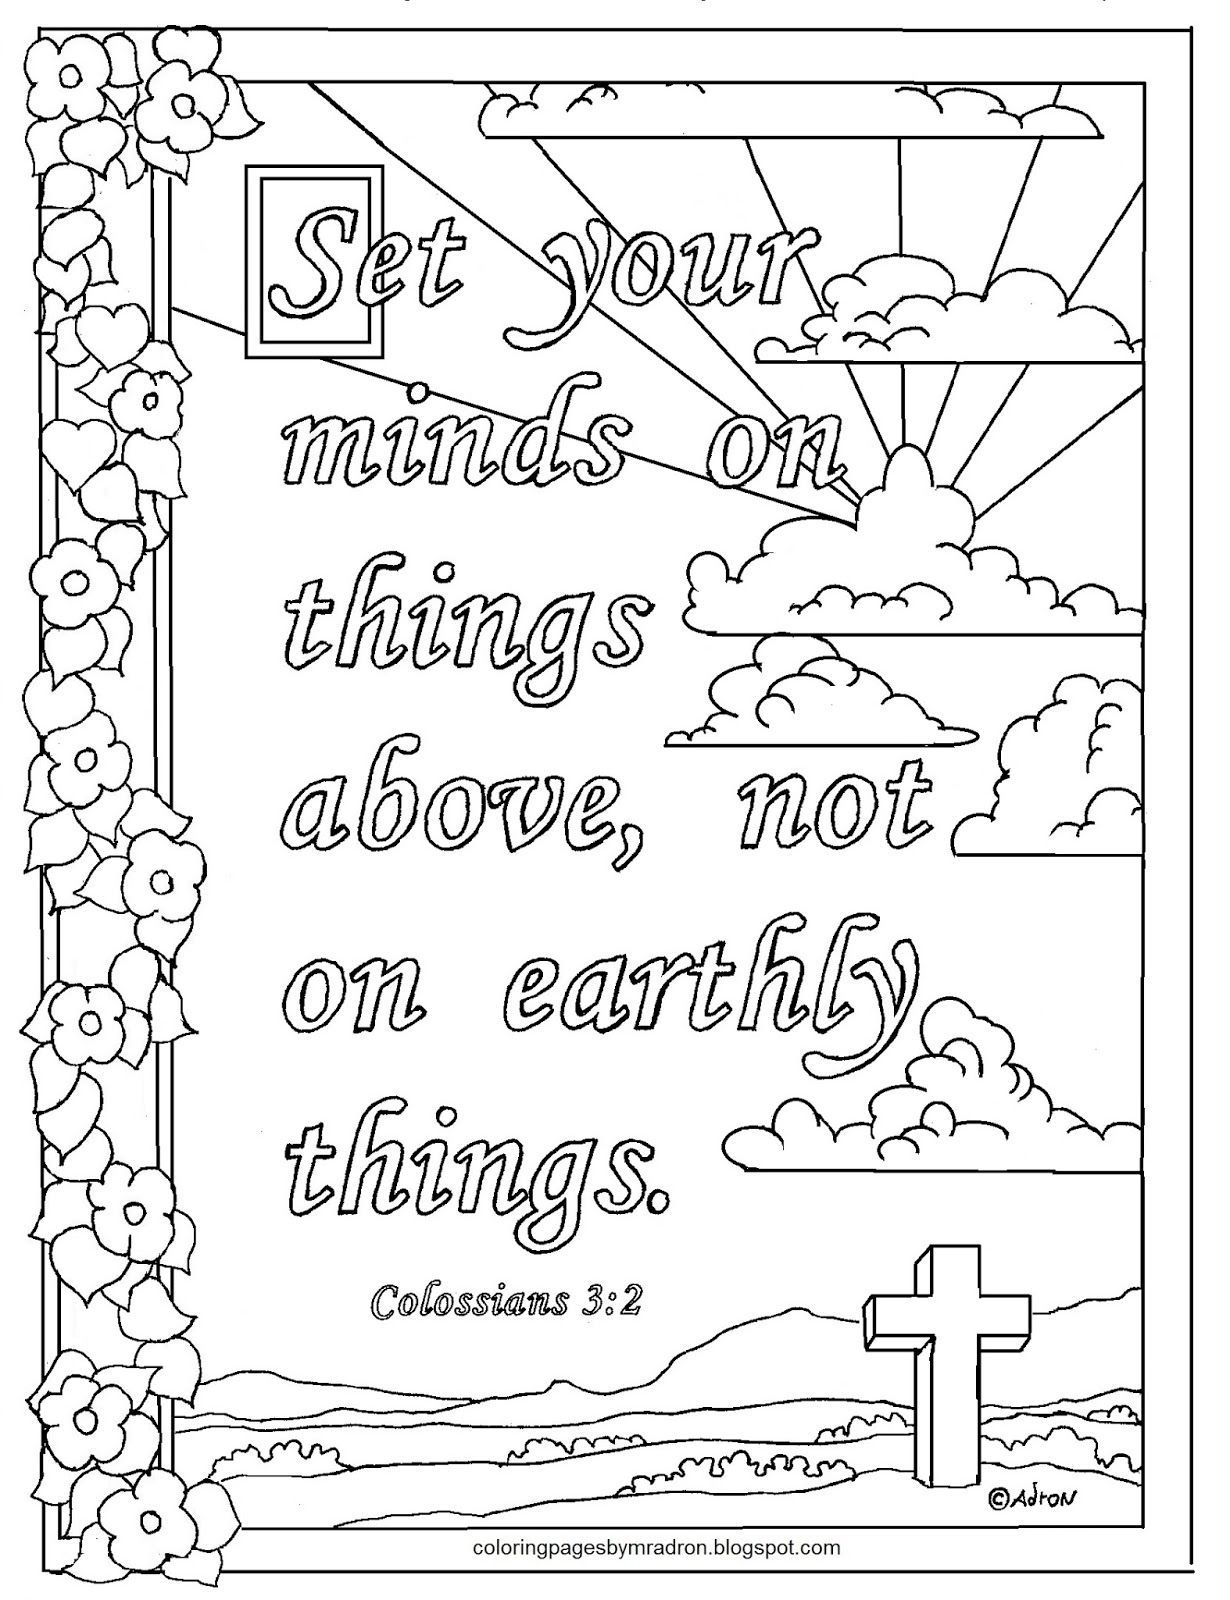 Colossians 3 2 1 230 1 600 Pixels With Images